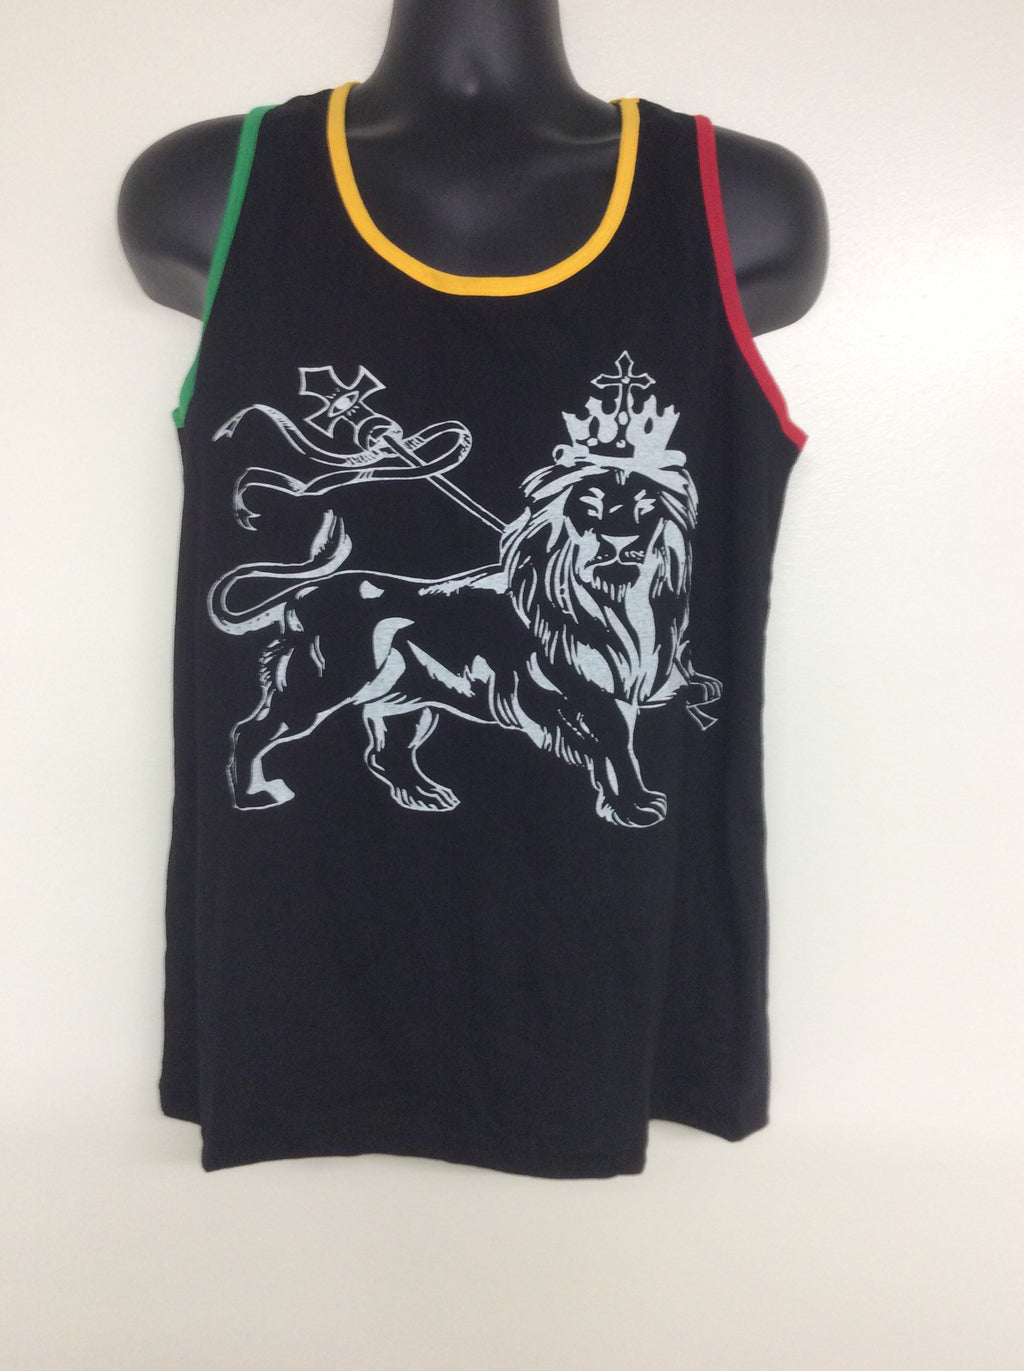 Rastawear collection men tank top (Wholesale)